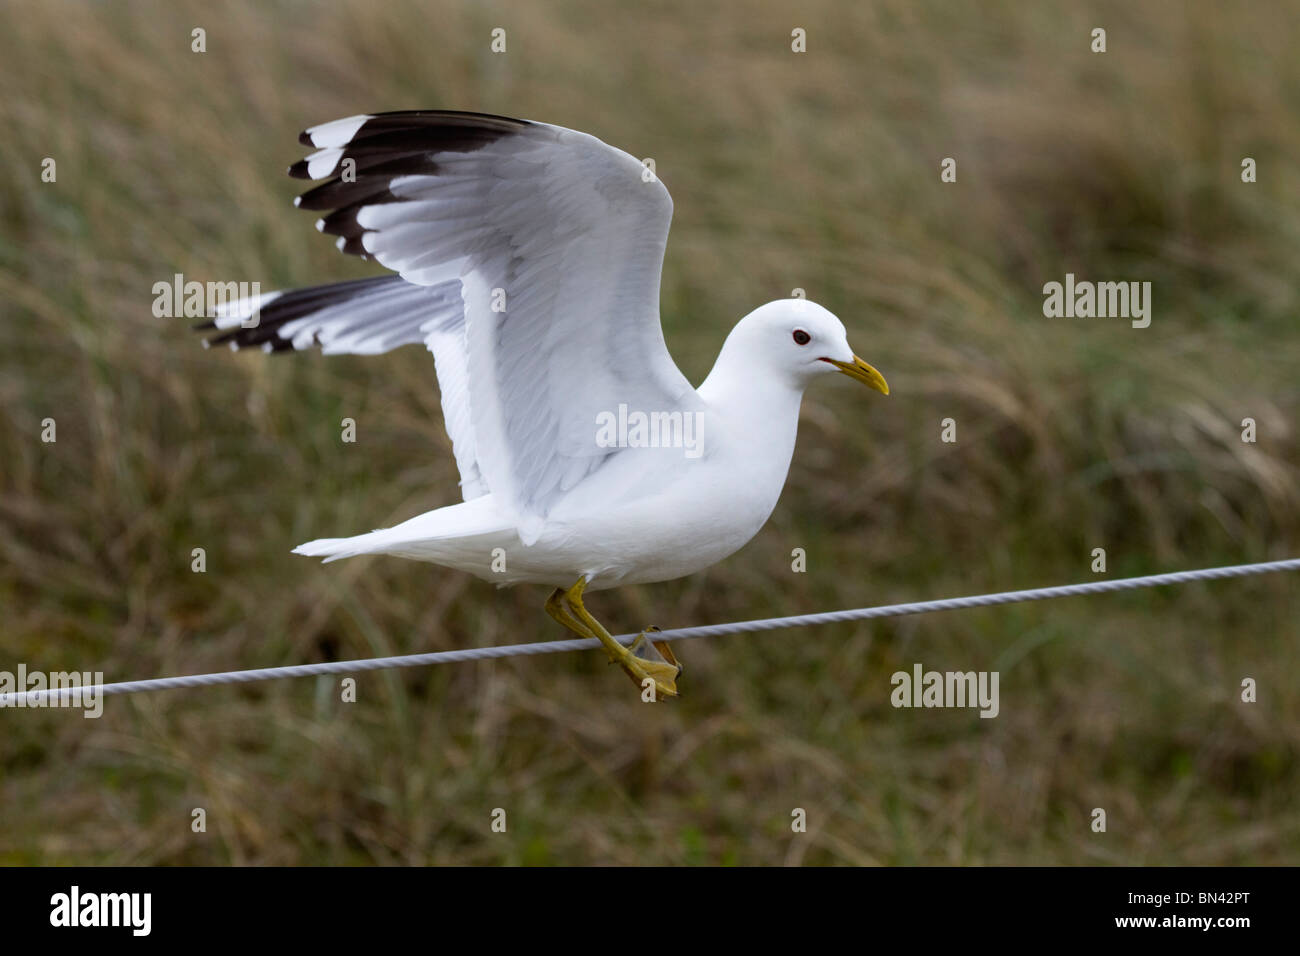 Common Gull; Larus canus; on a wire Stock Photo